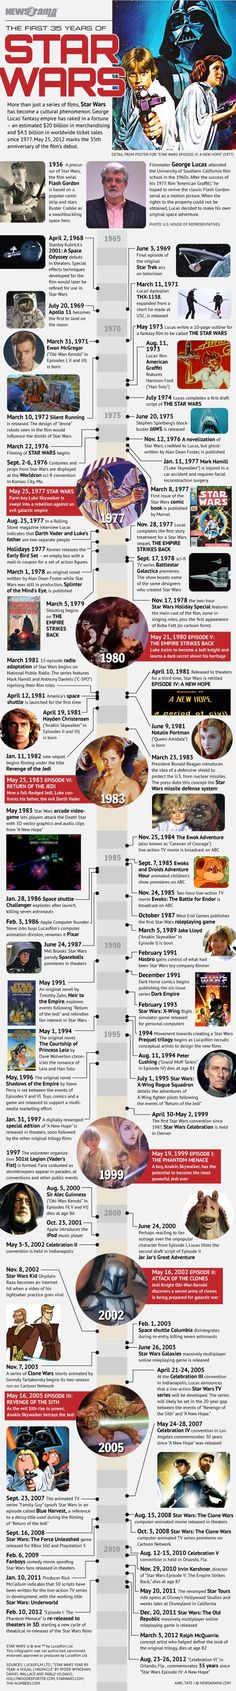 First 35 Years of STAR WARS [Infographic] | GeekTyrant #starwars